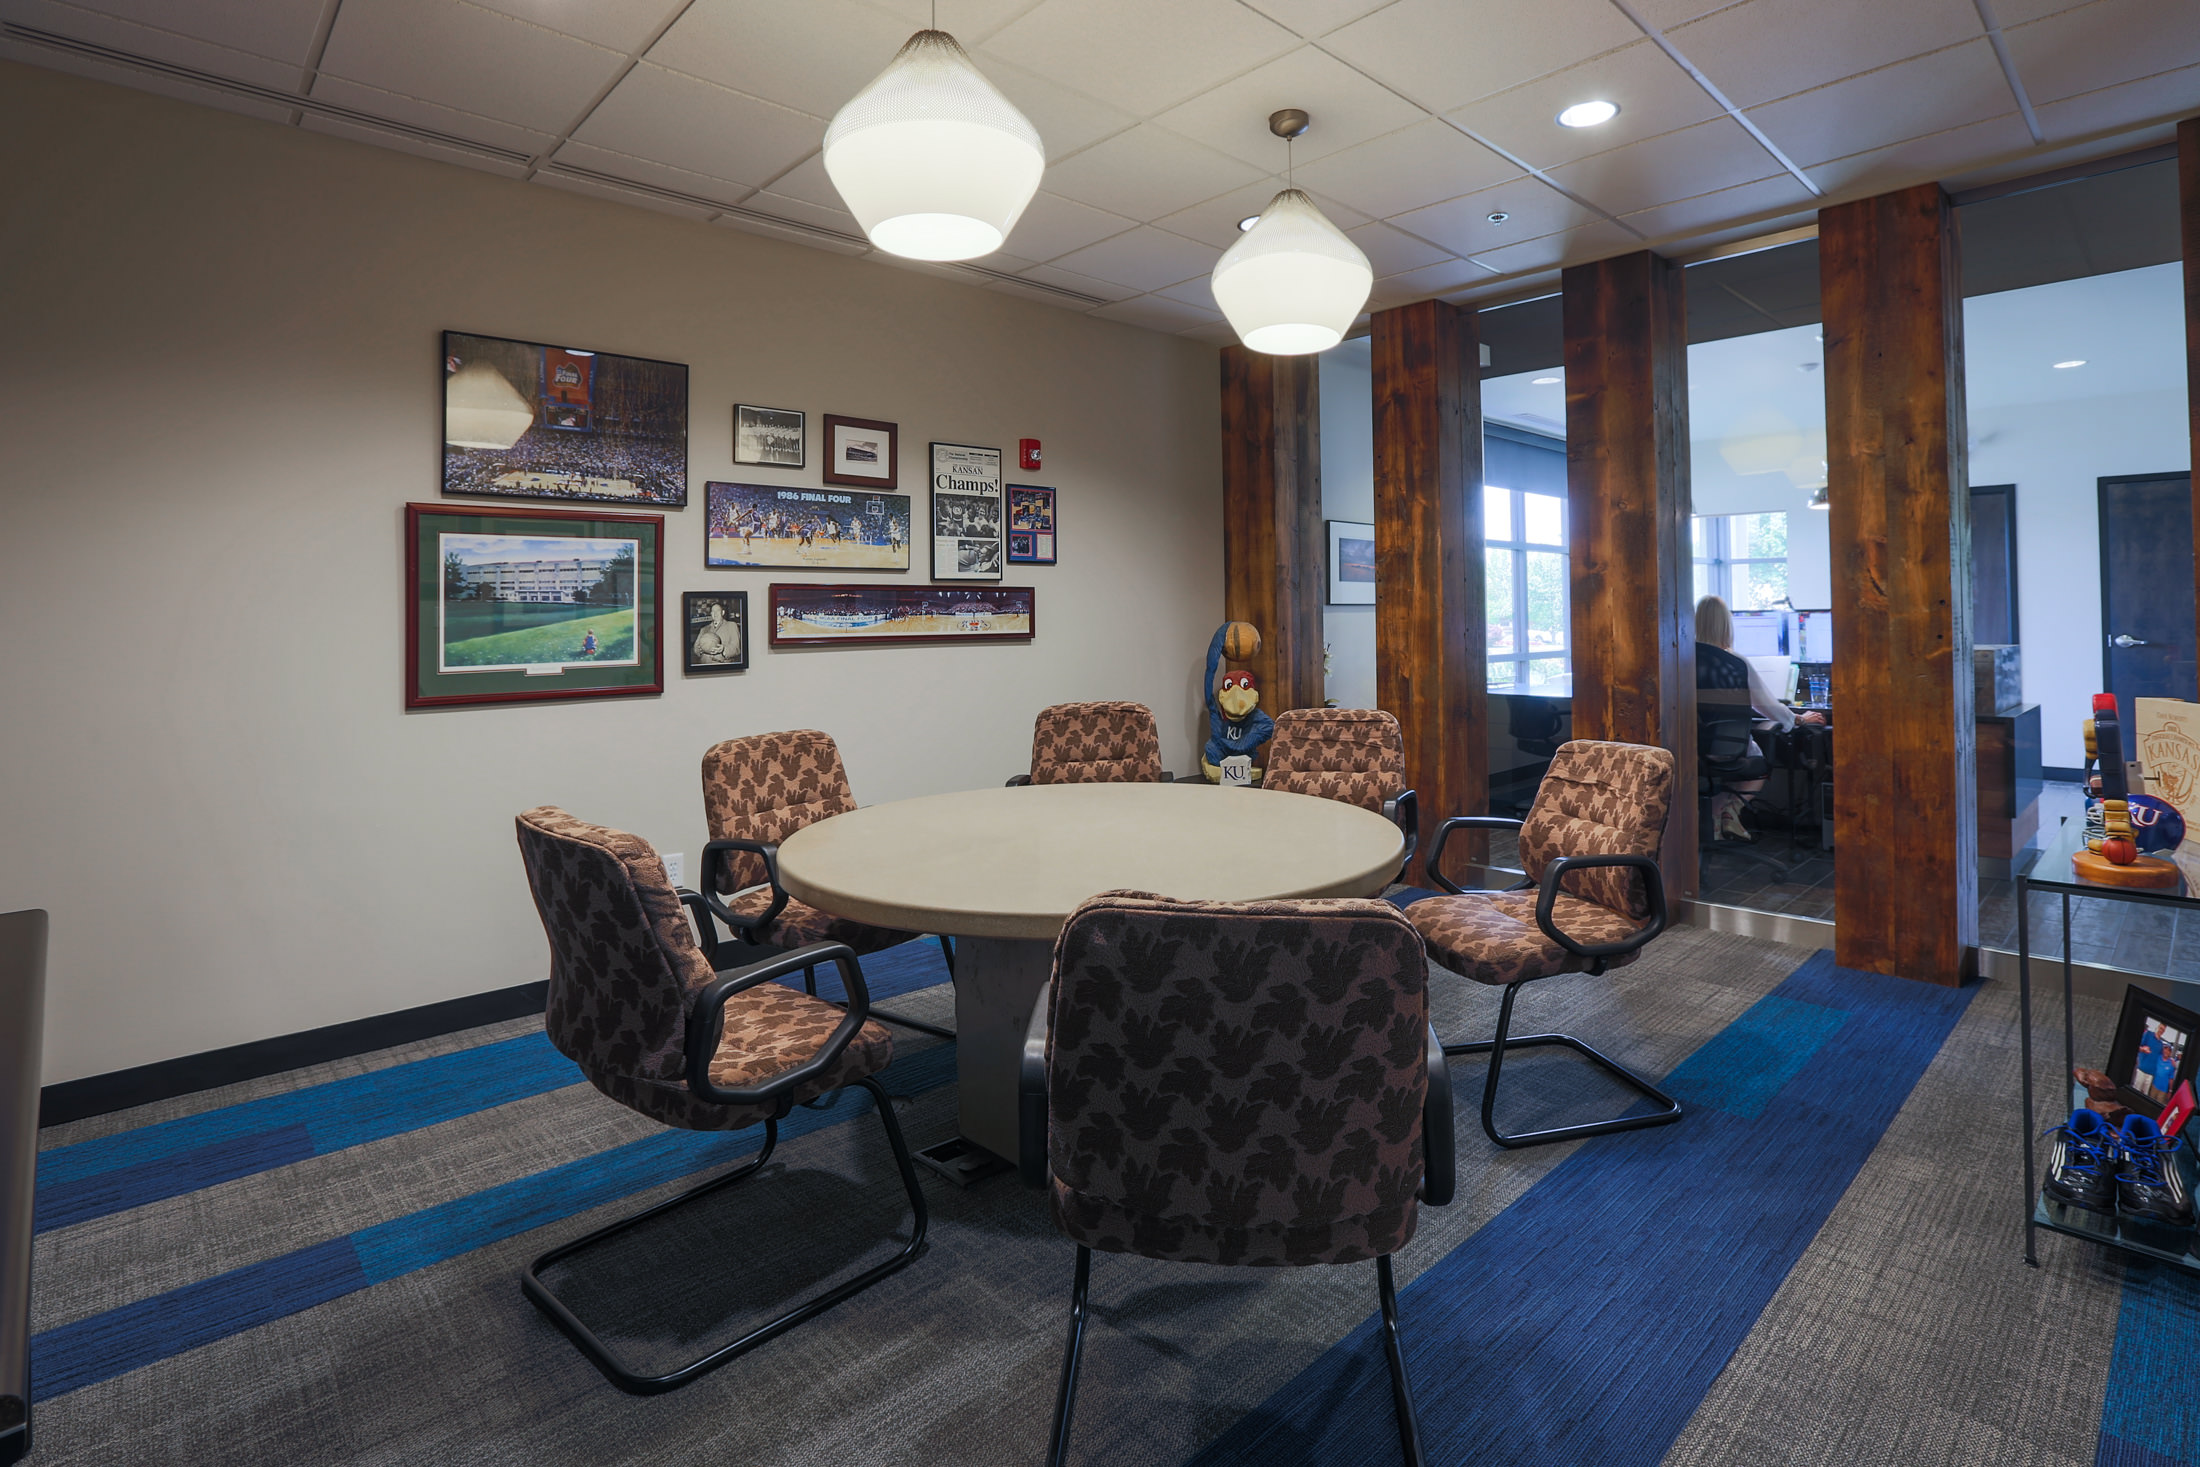 A conference room features KU memorabilia and reclaimed wood columns